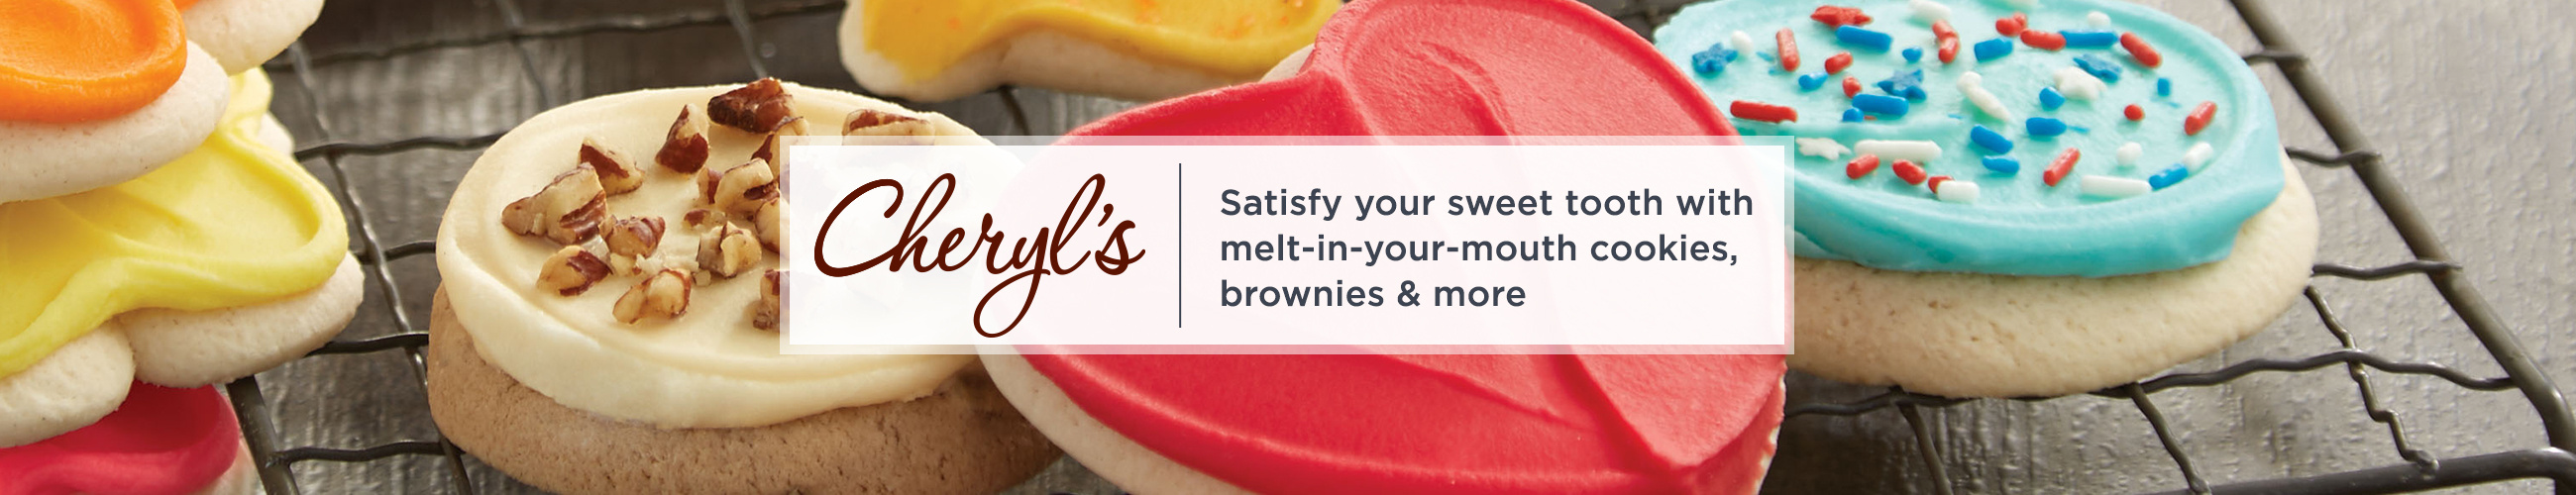 Cheryl's. Satisfy your sweet tooth with melt-in-your-mouth cookies, brownies & more